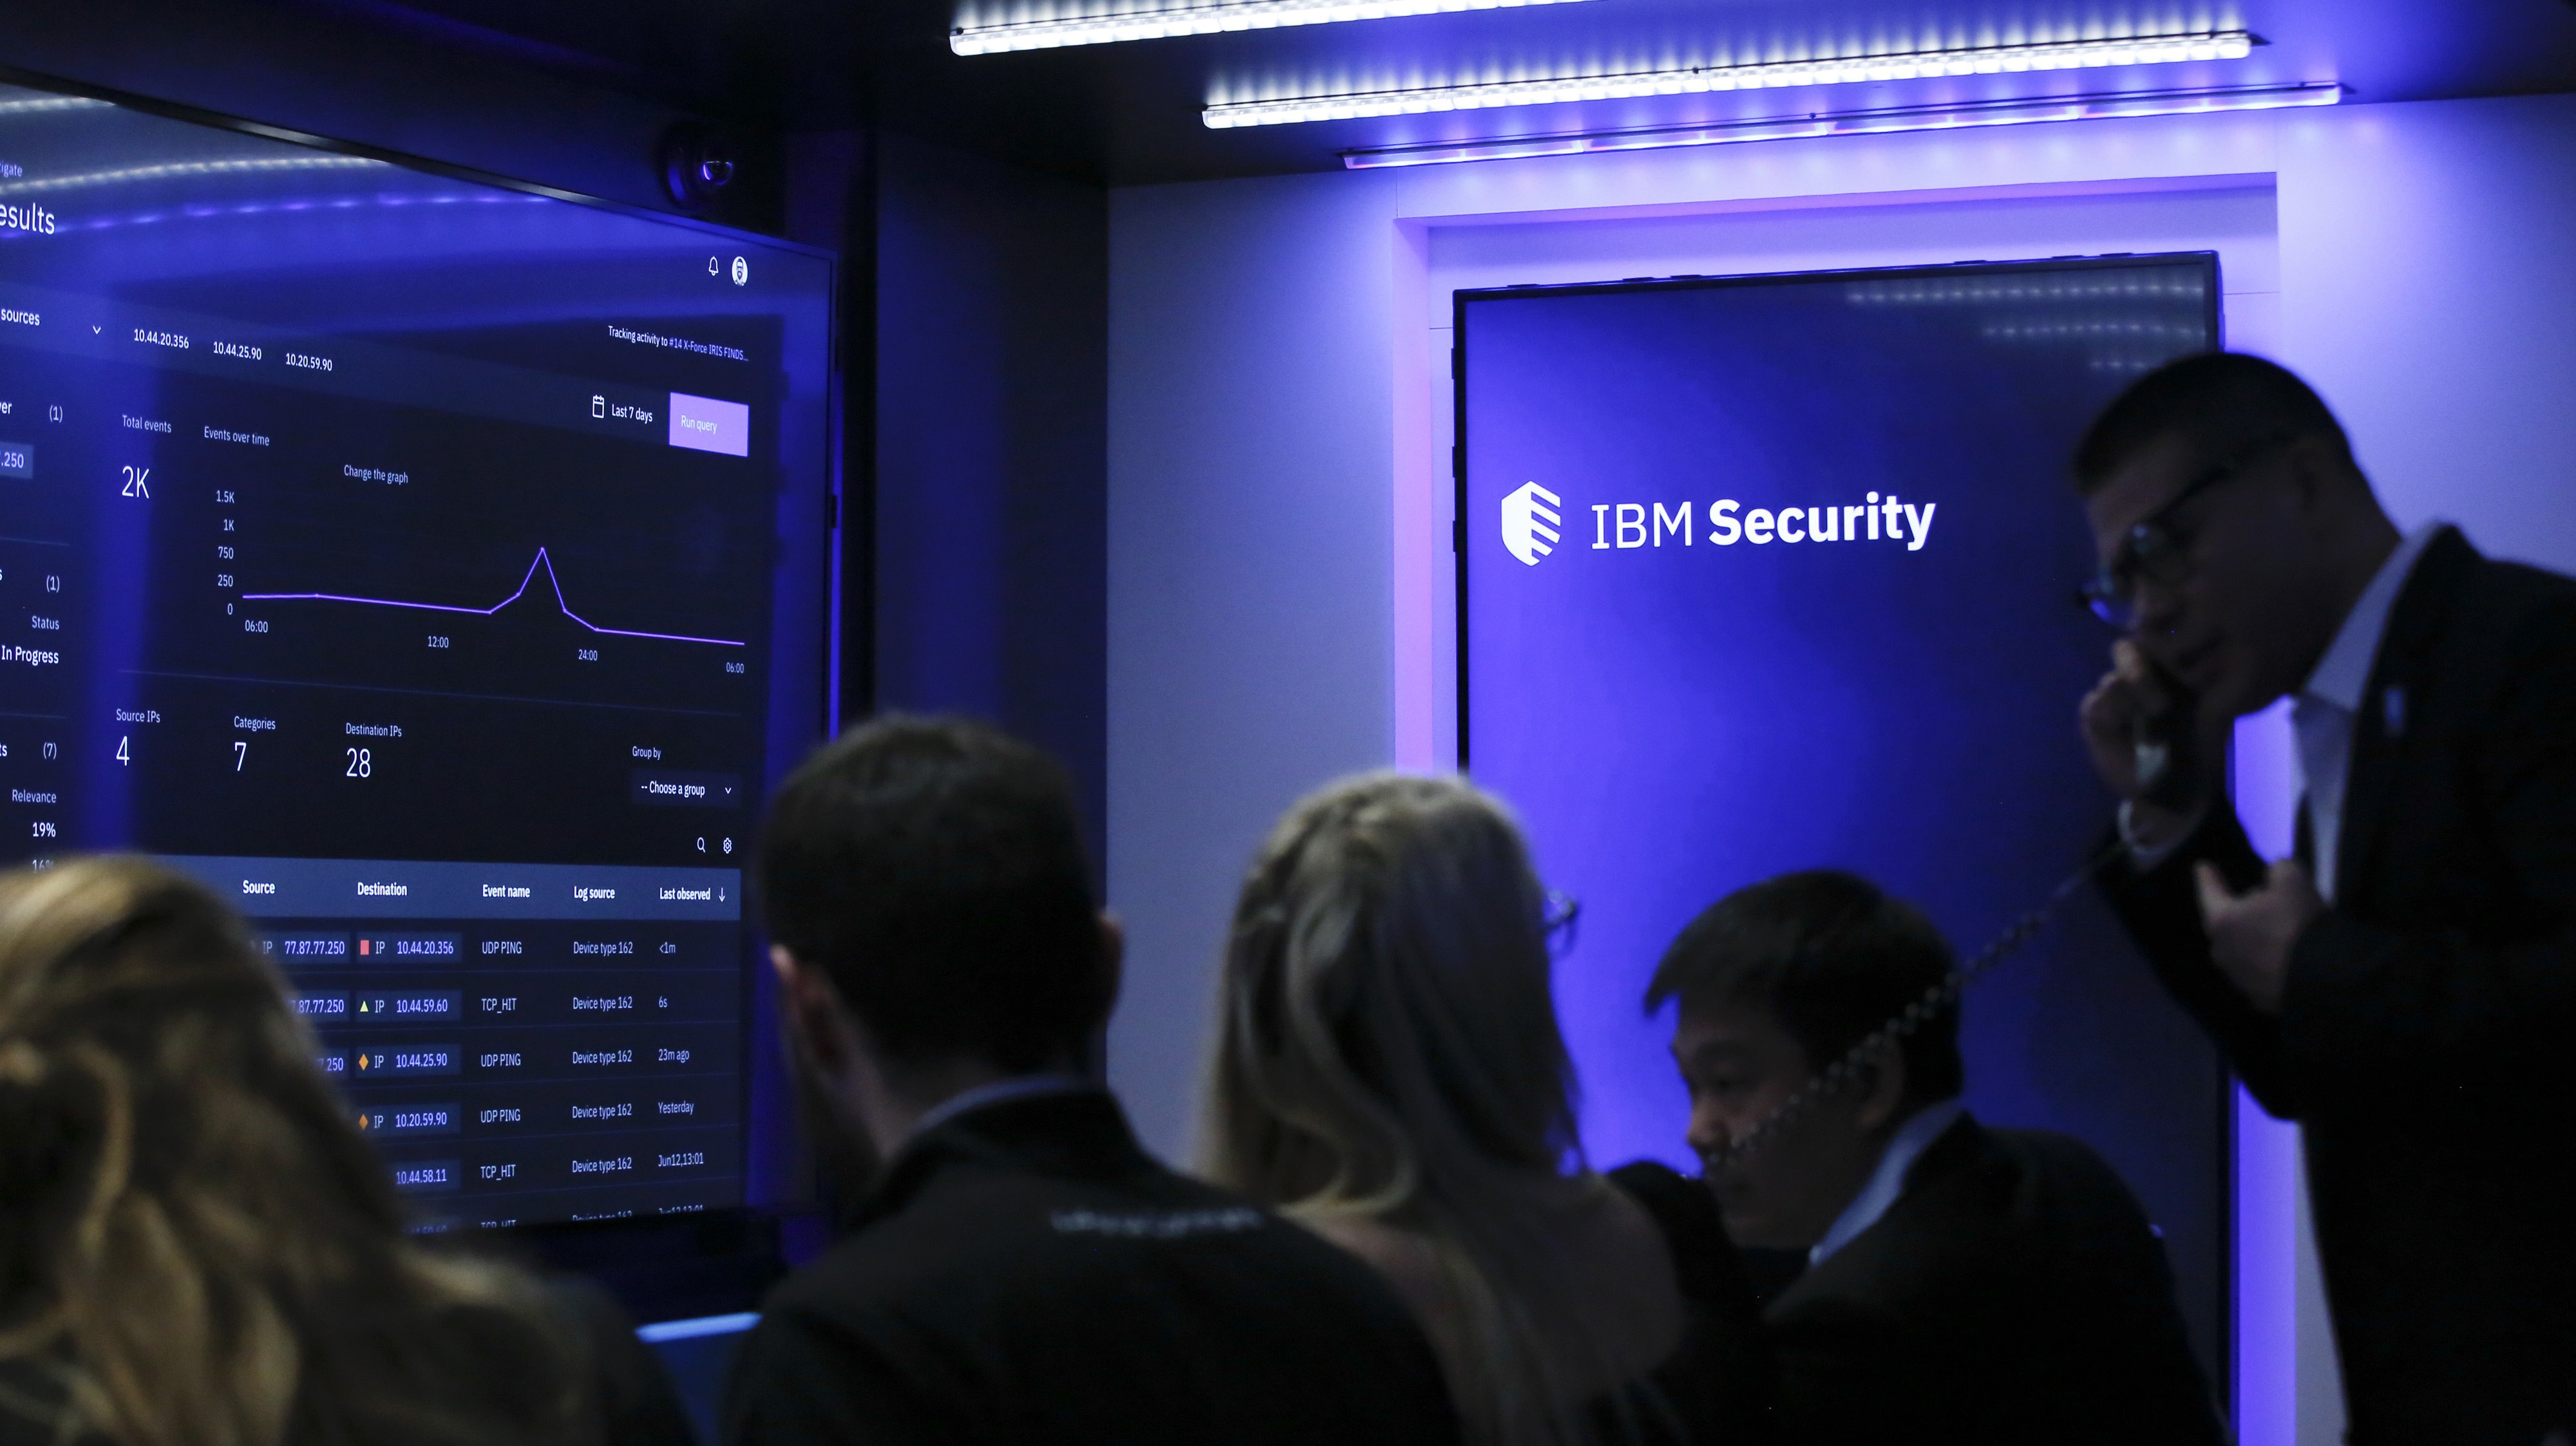 IBM Cyber Security Training Exercise on 18 Wheels